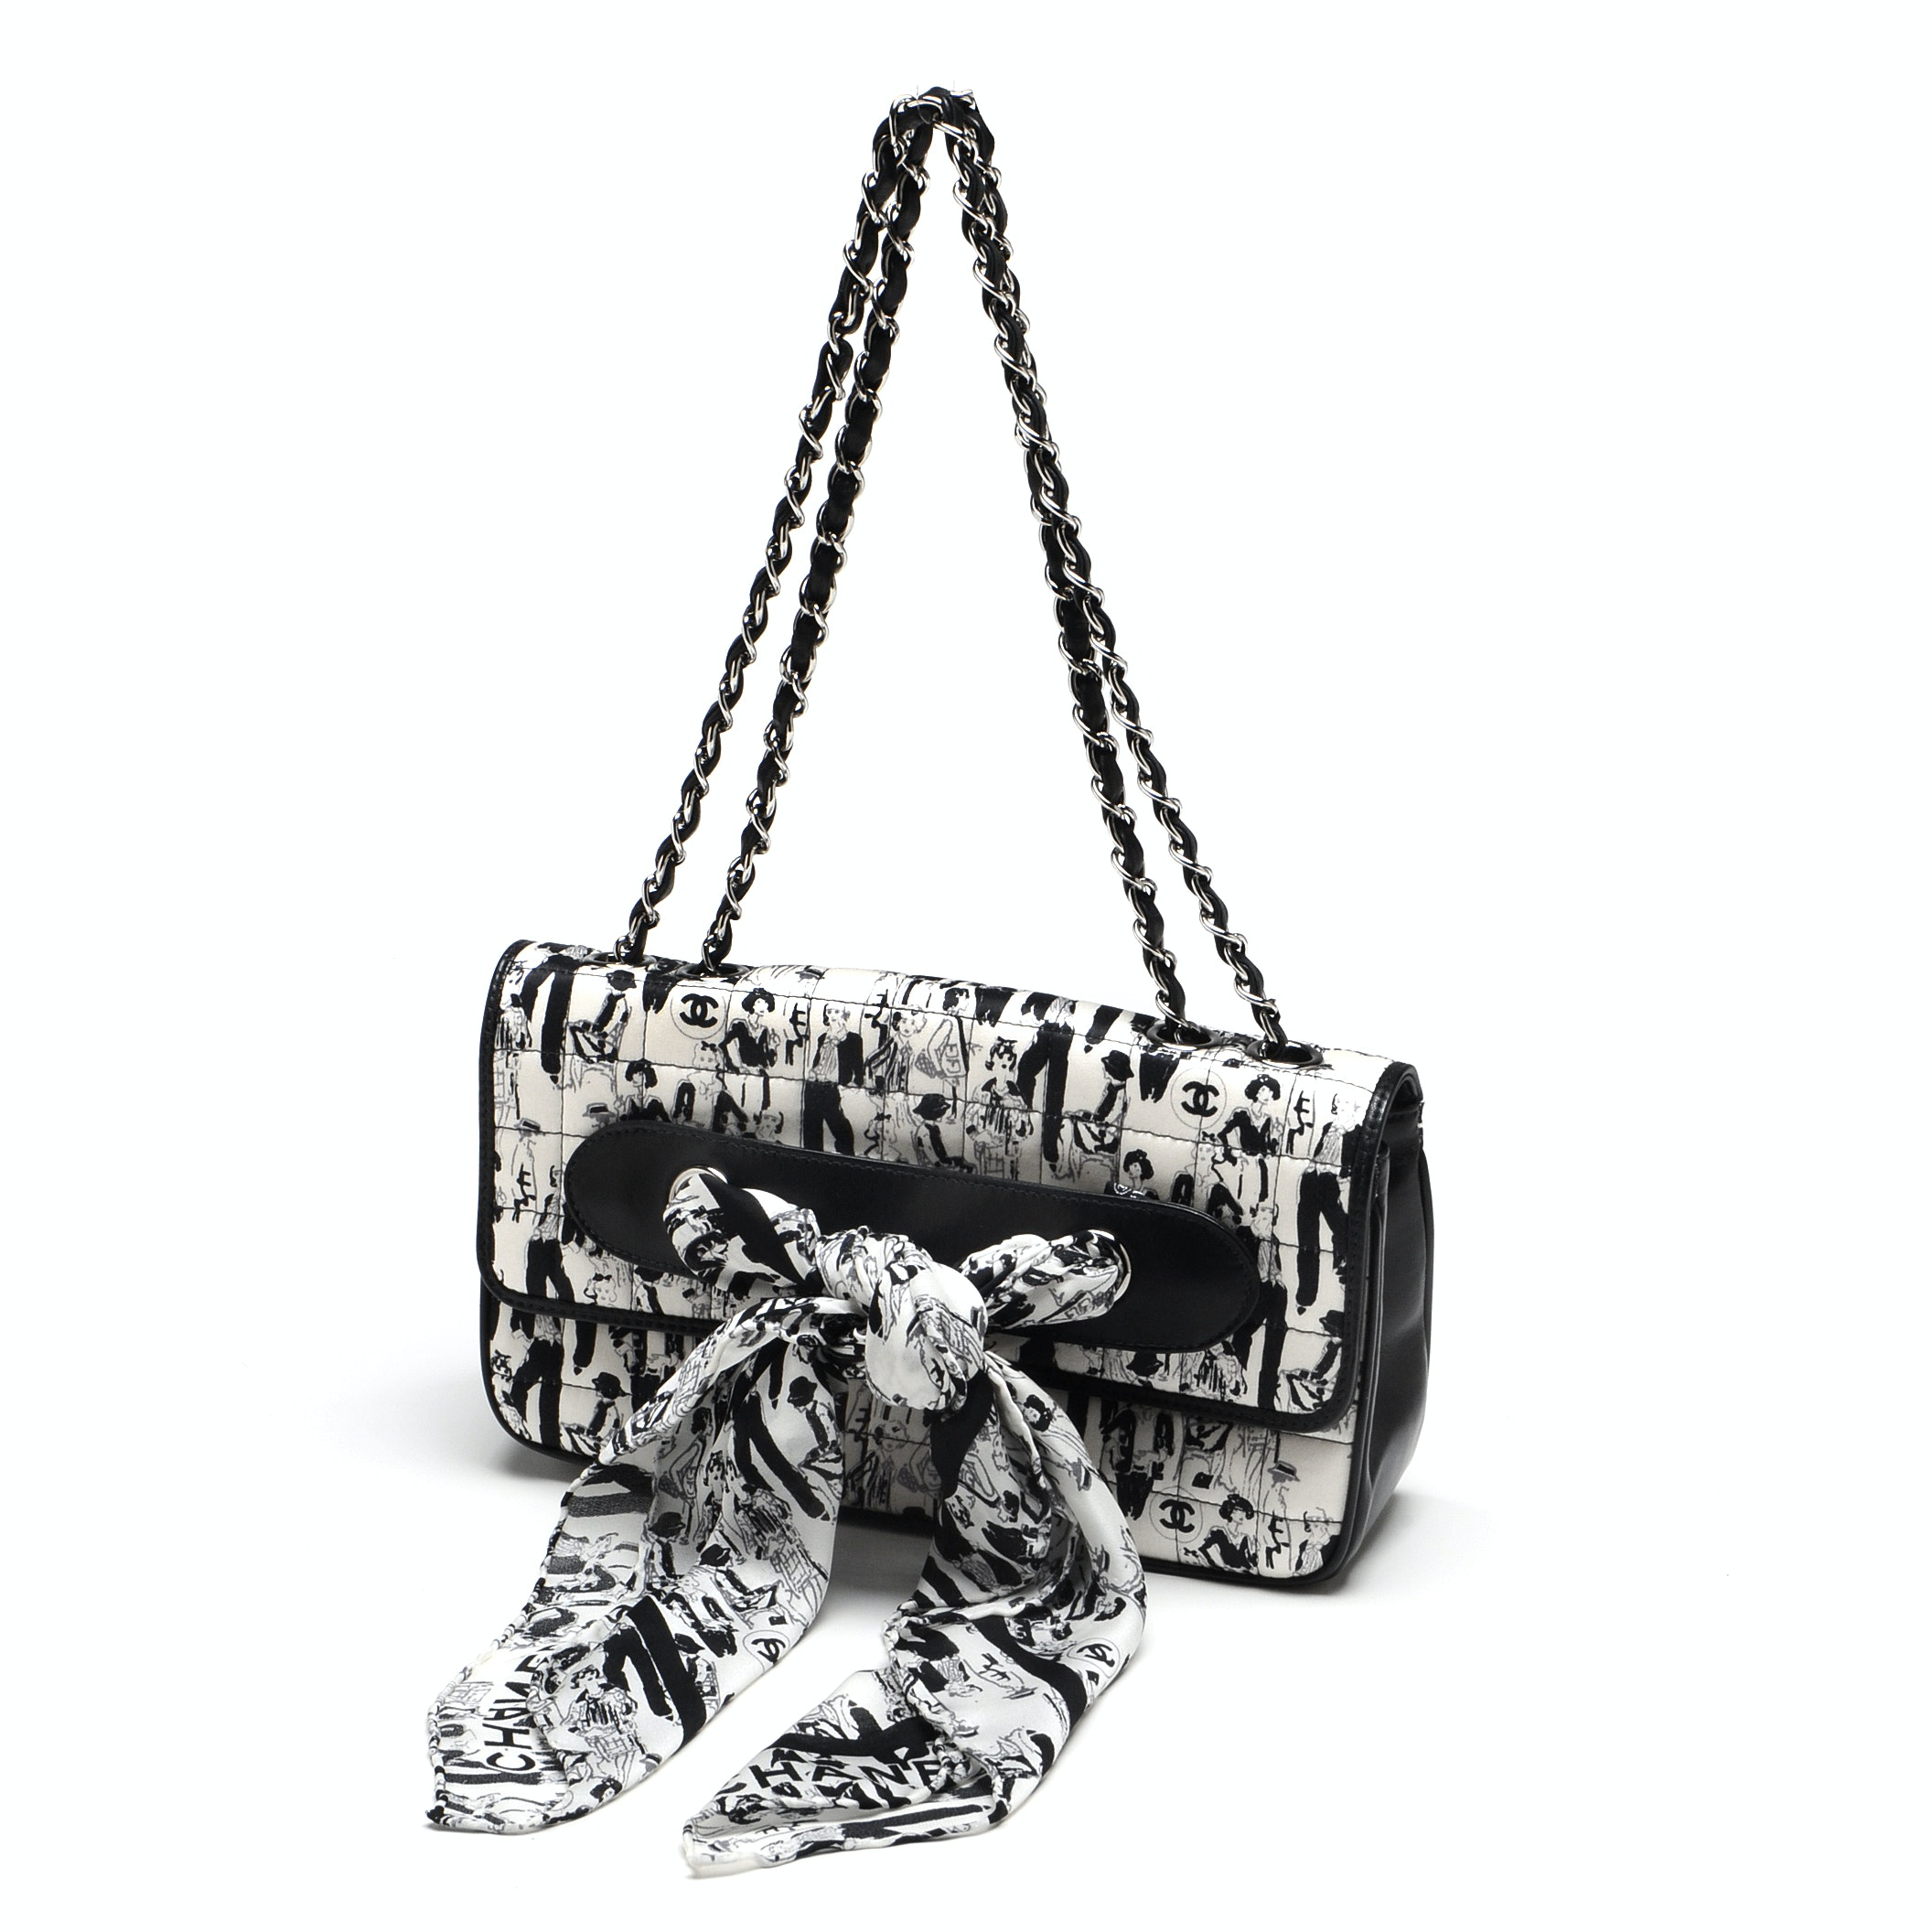 Chanel Black and White Silk Coco Mademoiselle Print Lambskin Leather Flapbag